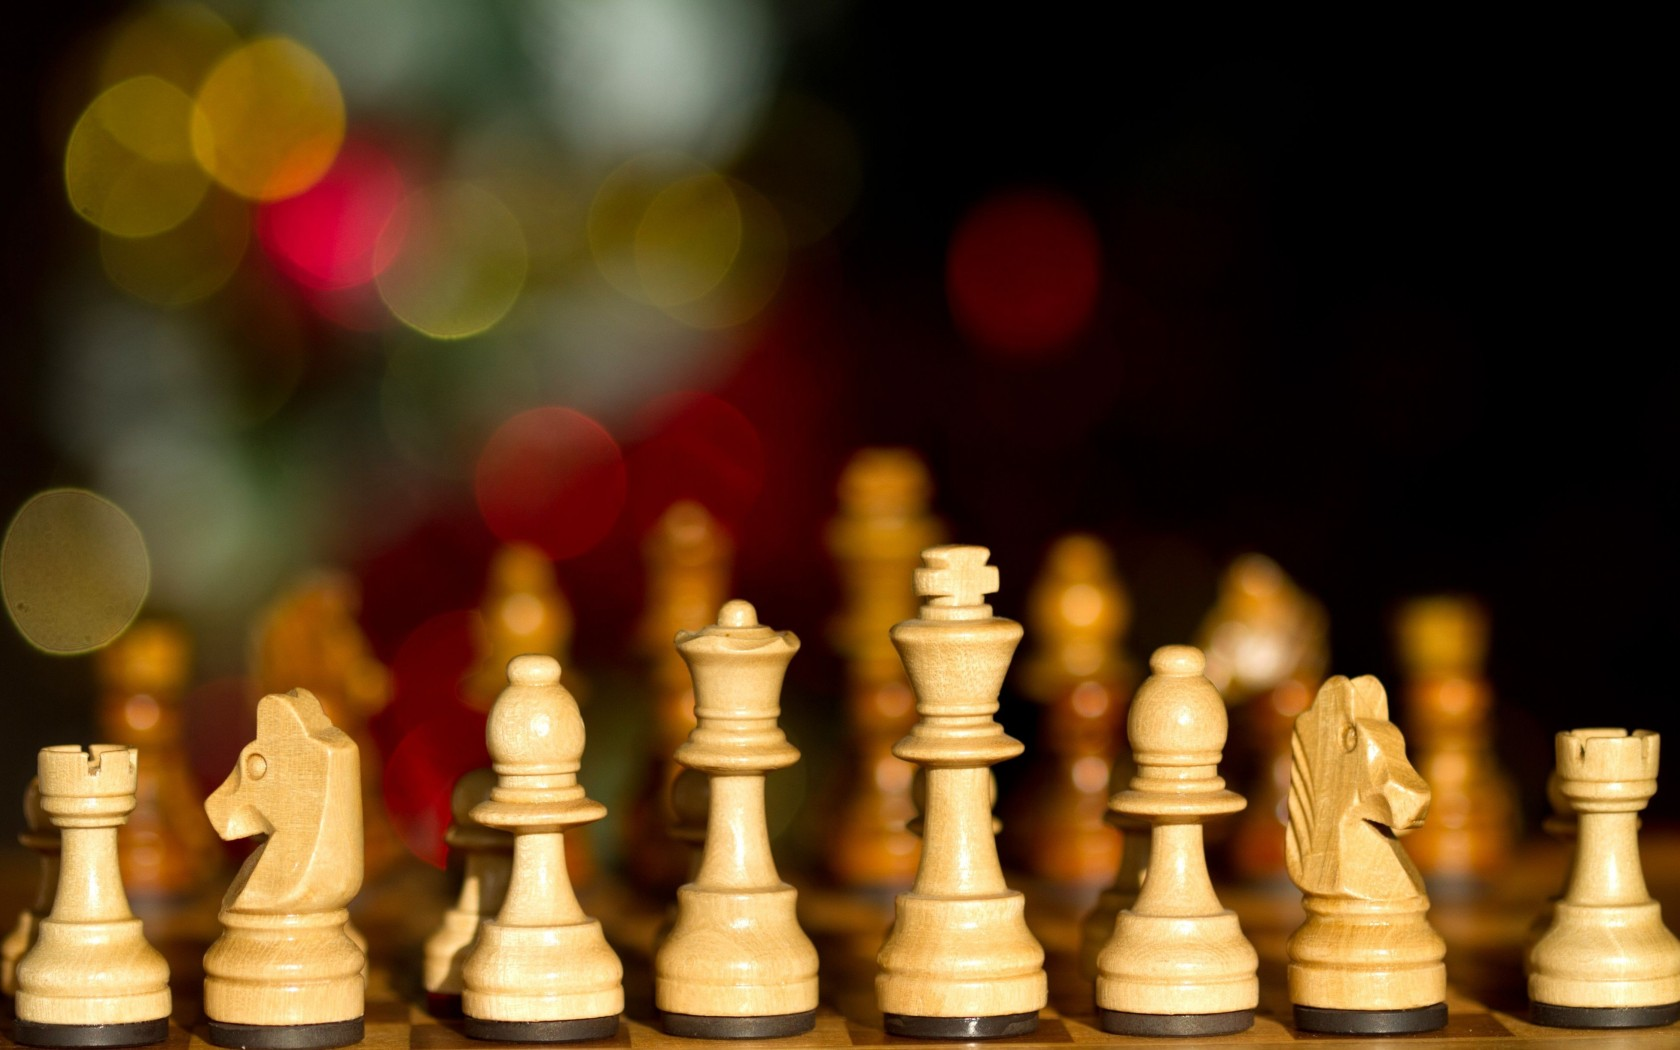 Chess Pictures 23579 1680x1050 px HDWallSourcecom